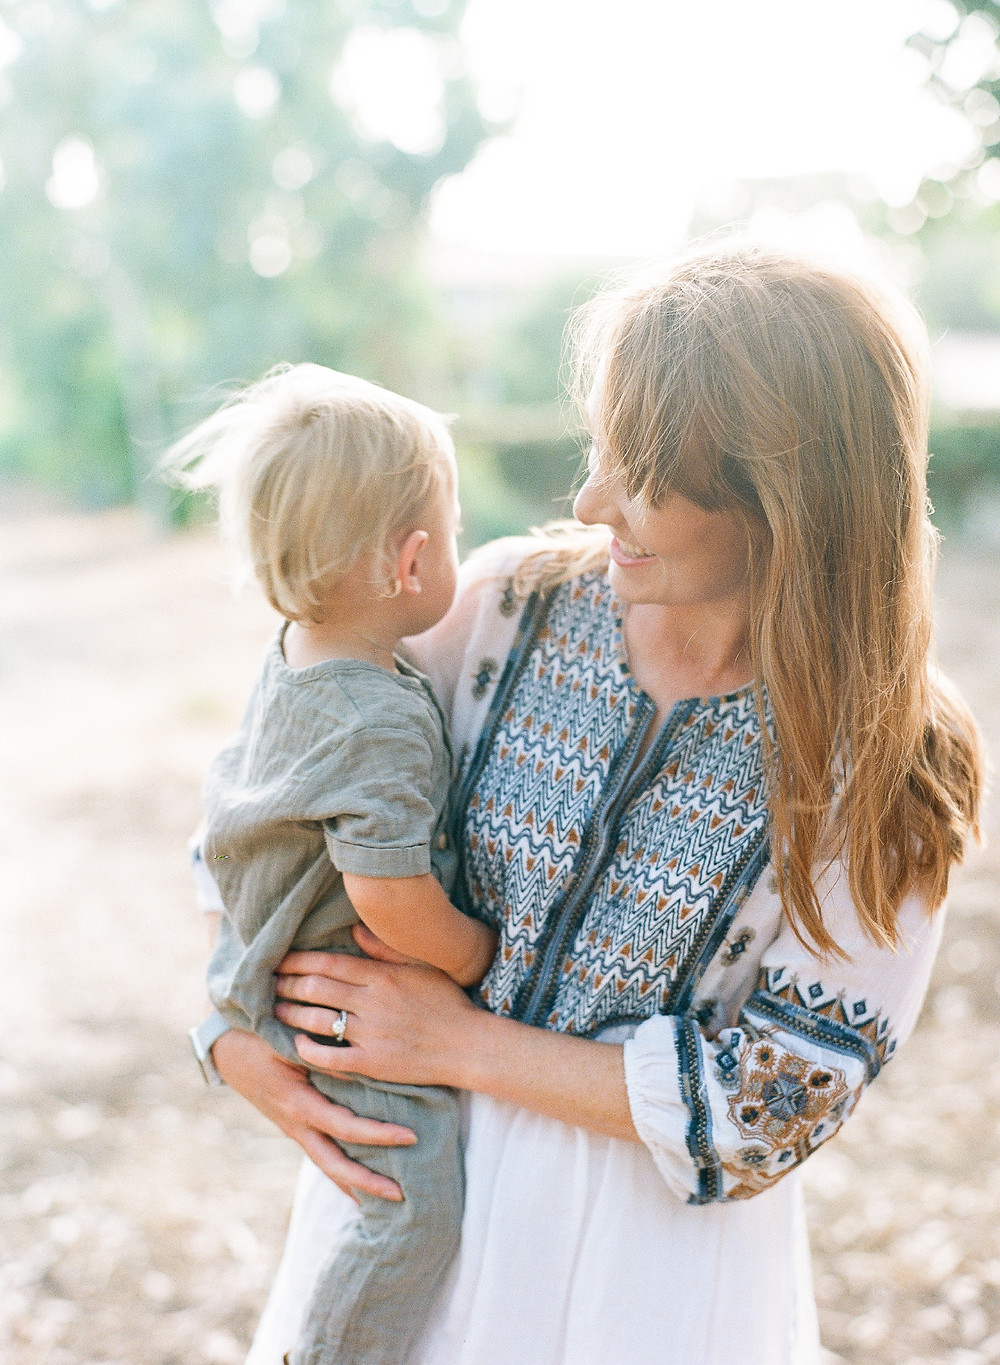 Mom looking lovingly at blonde toddler family portraits